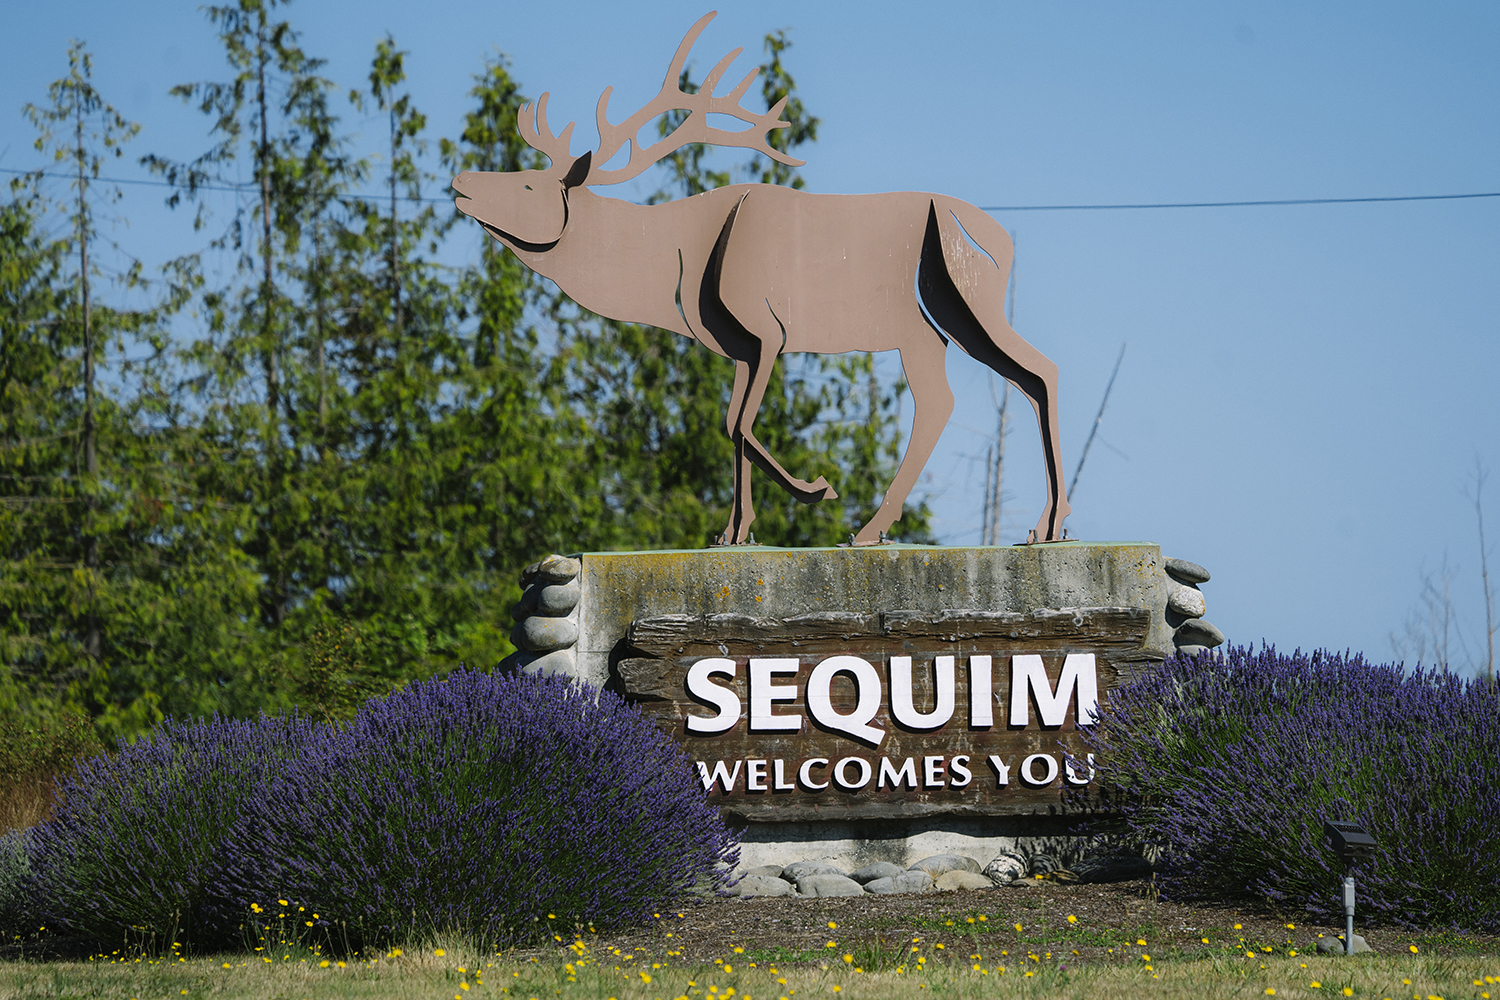 SEQUIM. It's easy to focus on the destination rather than the journey, but that's only part of the story. There are so many exciting things to see along the way; the general store in a small town, a historical marker with information about an important event or a sign welcoming visitors into a town. Photographer Anthony May has been collecting Welcome signs from towns and cities he's visited for over nine years and across several states. This gallery focuses specifically on Washington. (Image: Anthony May / Seattle Refined)